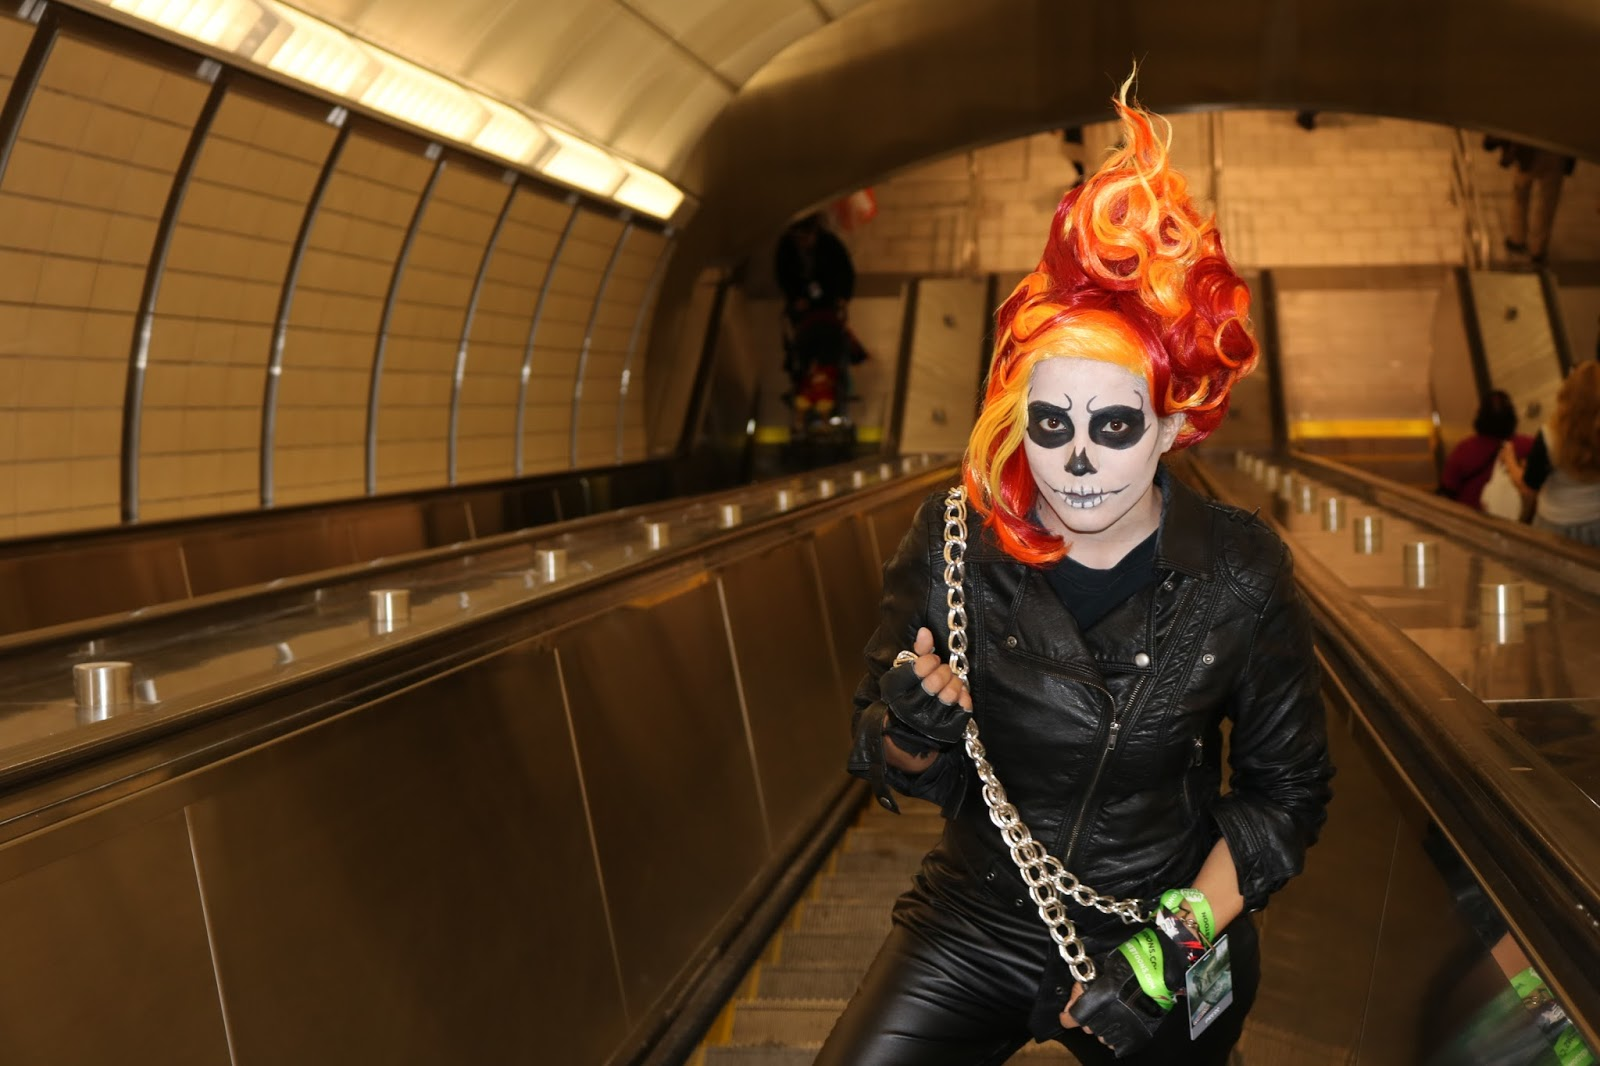 Ghost rider cosplay at new york comic con 2015 nubias nonsense like always life will show you anything is possible i know it sounds silly to say something like that about a costume solutioingenieria Gallery